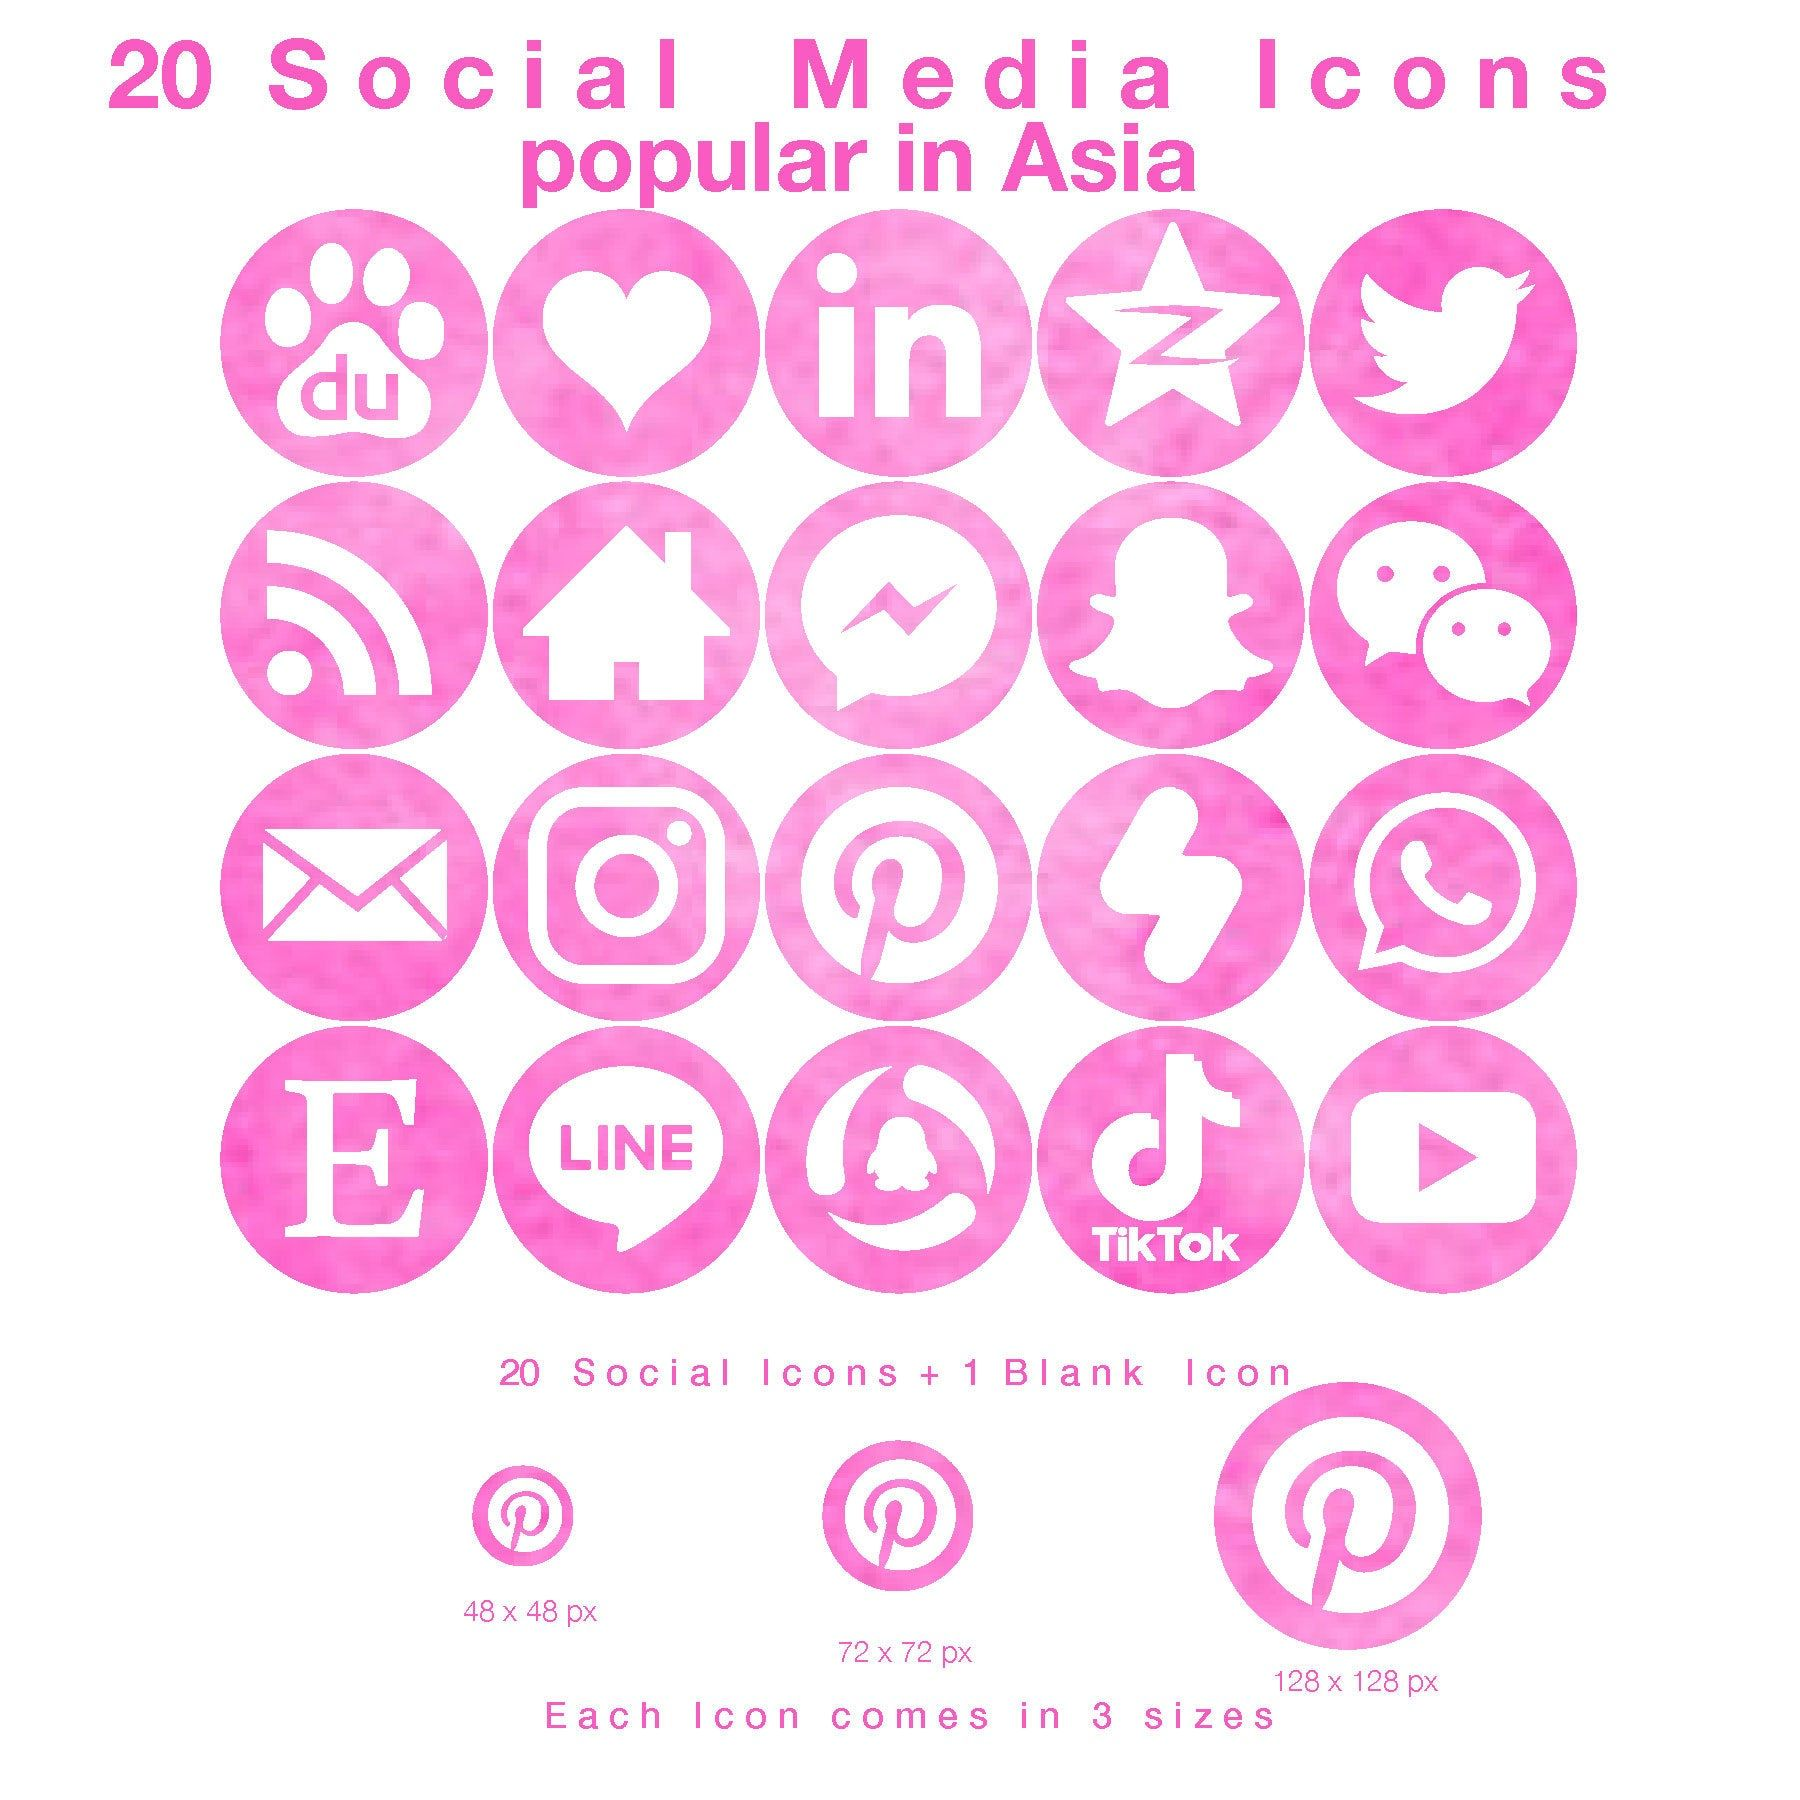 20 Web & Blog Icons for Social Media Popular in Asia